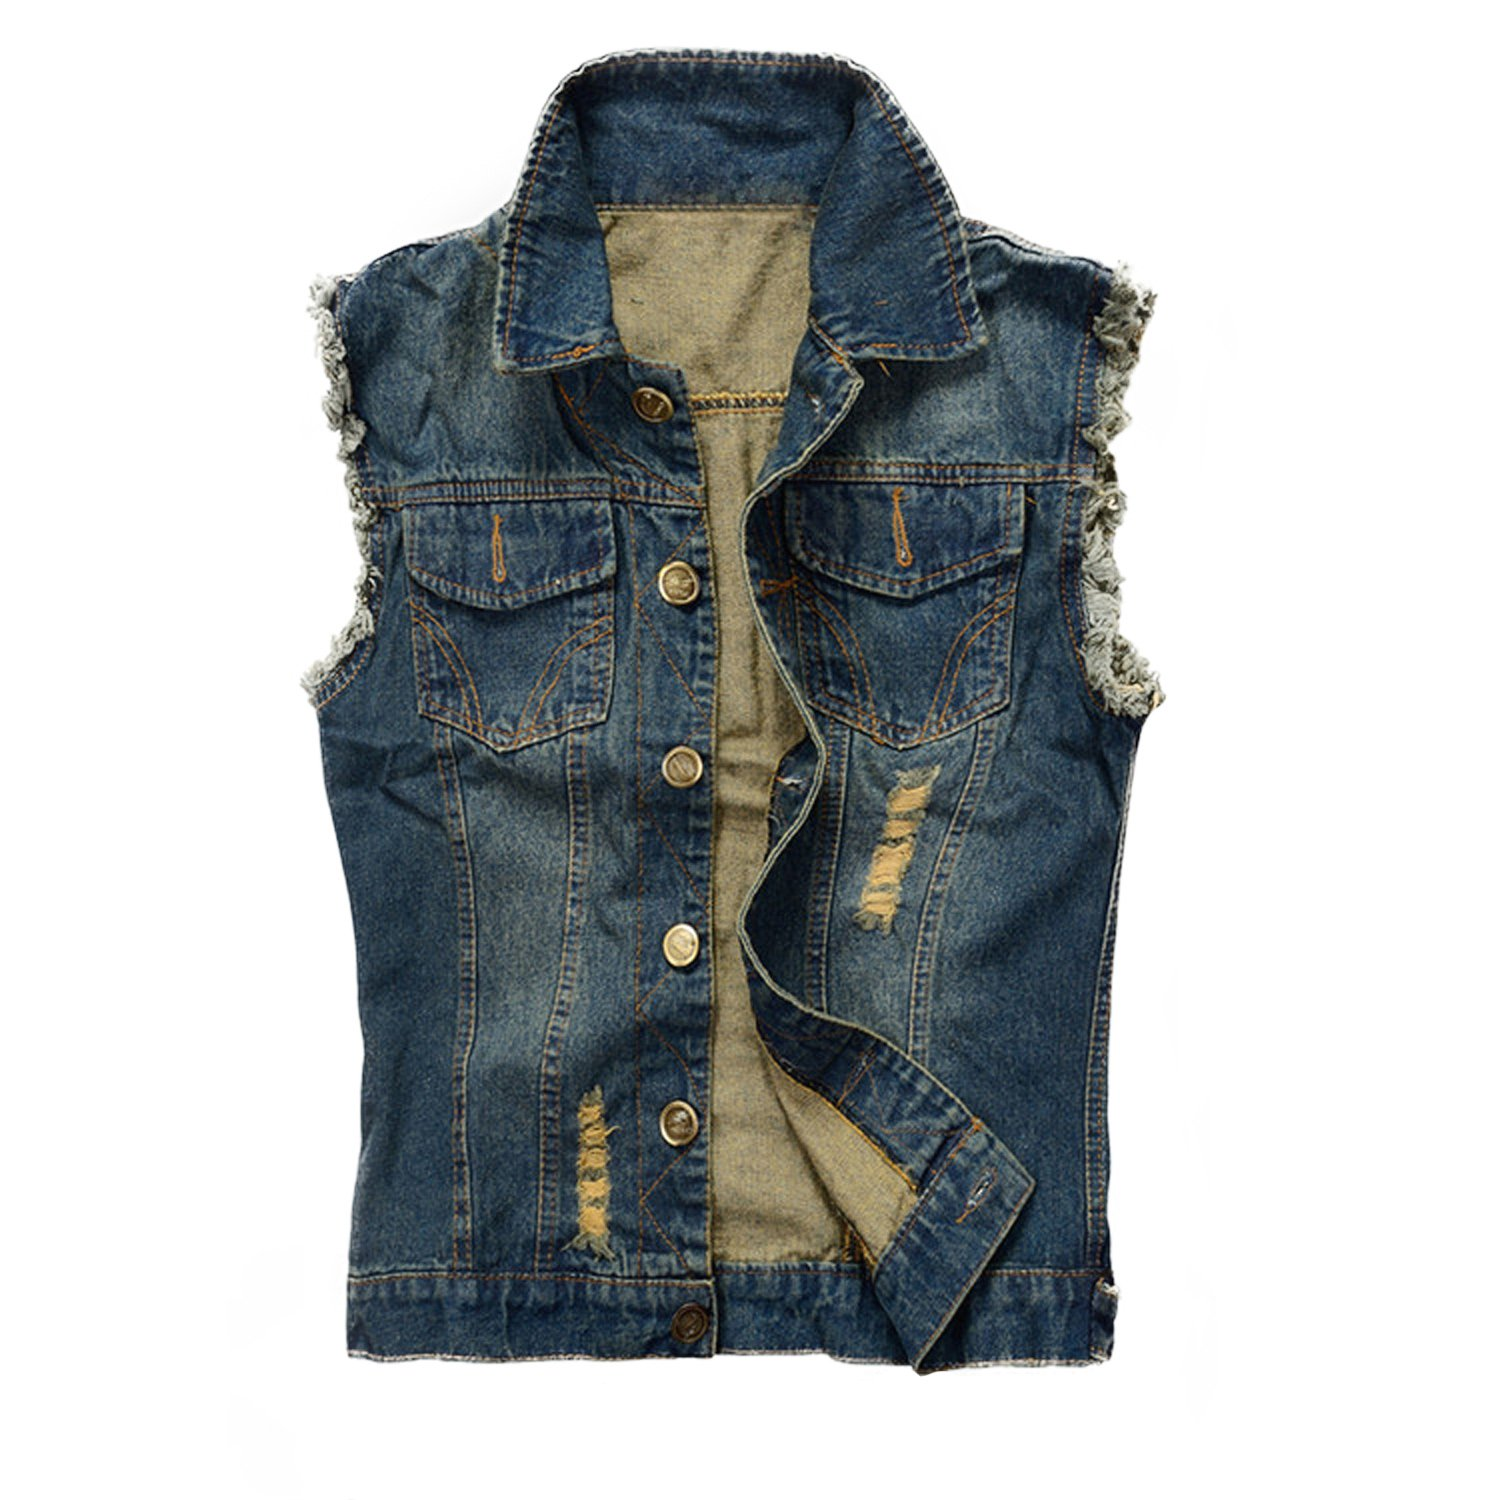 NASKY Men&Women's Fit Retro Ripped Denim Vest Sleeveless Lapel Jean Vest Jacket Waistcoat Top Plus Size XXX-Large by NASKY